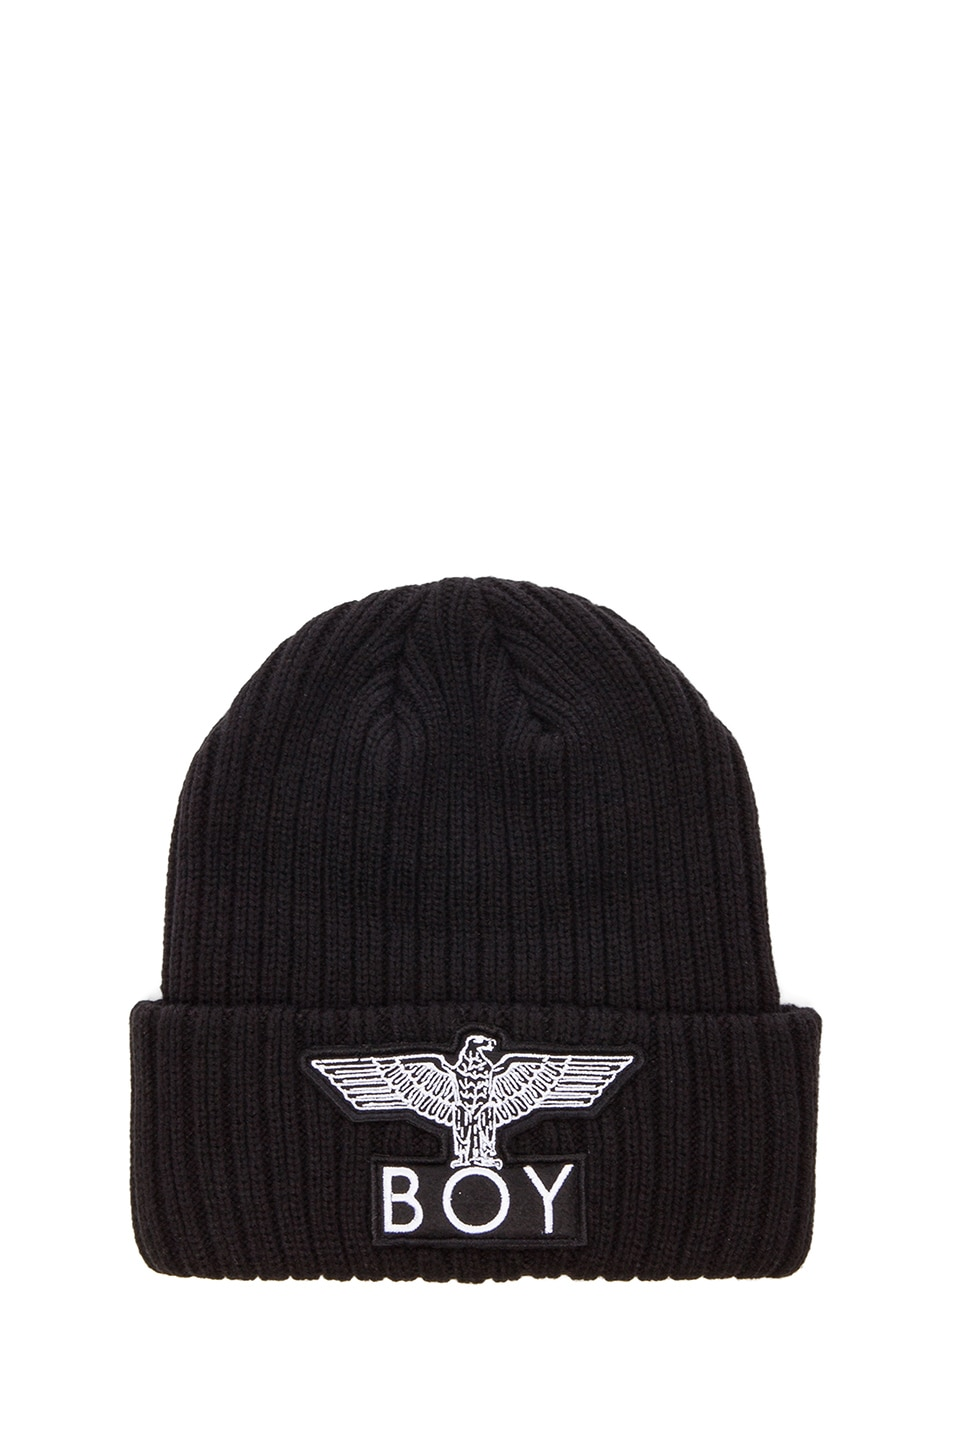 BOY London Cuffed Boy Beanie in Black